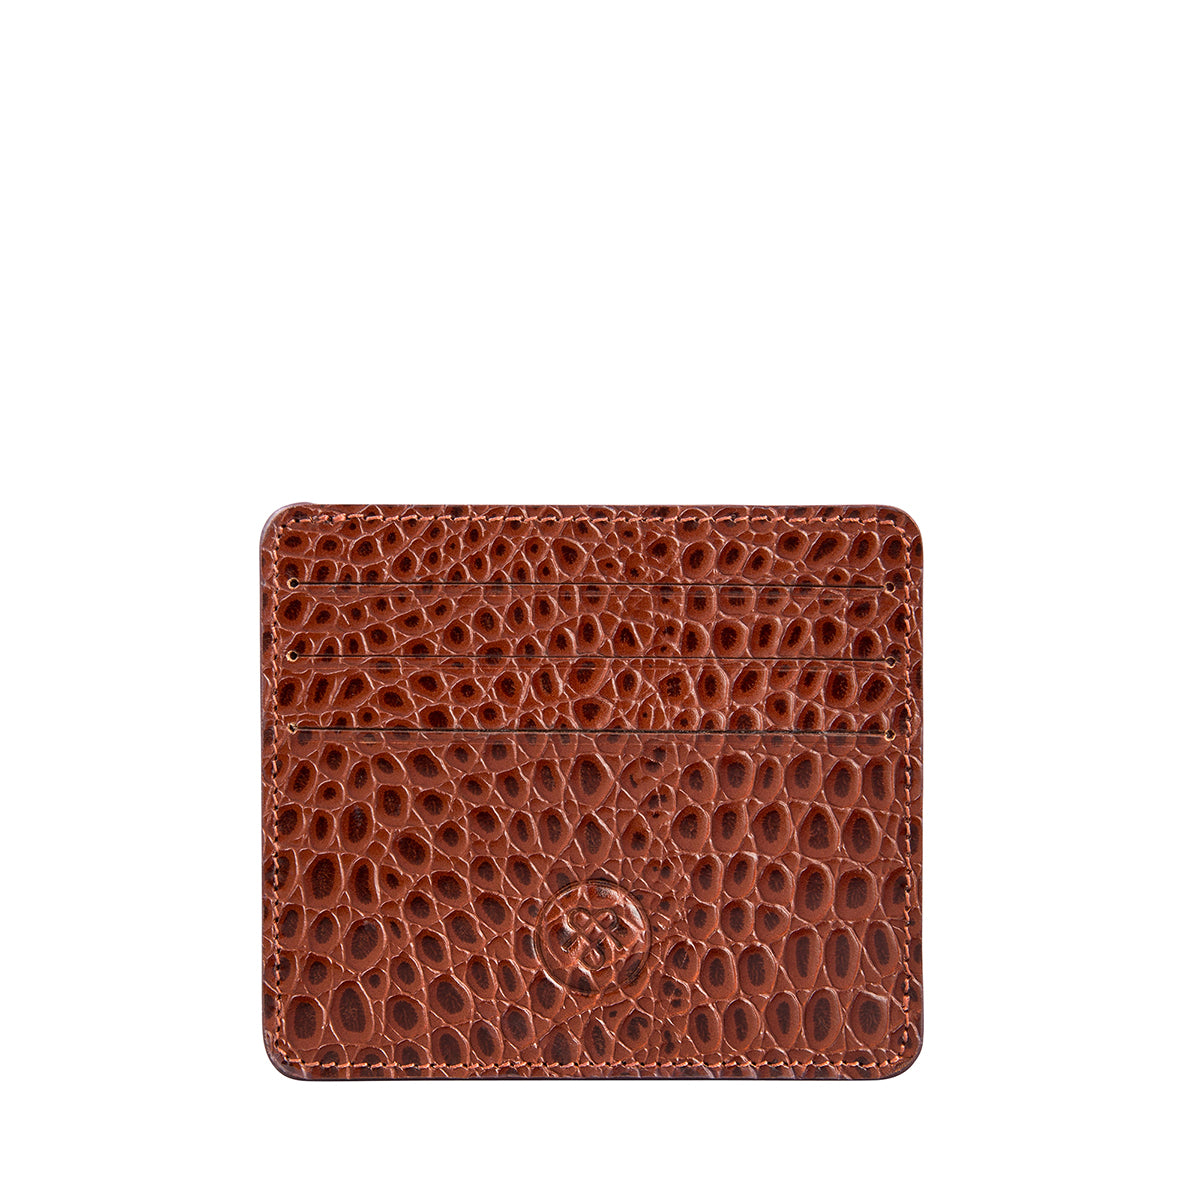 Image 1 of the 'Marco' Chestnut Mock Croc Veg-Tanned Leather Wallet